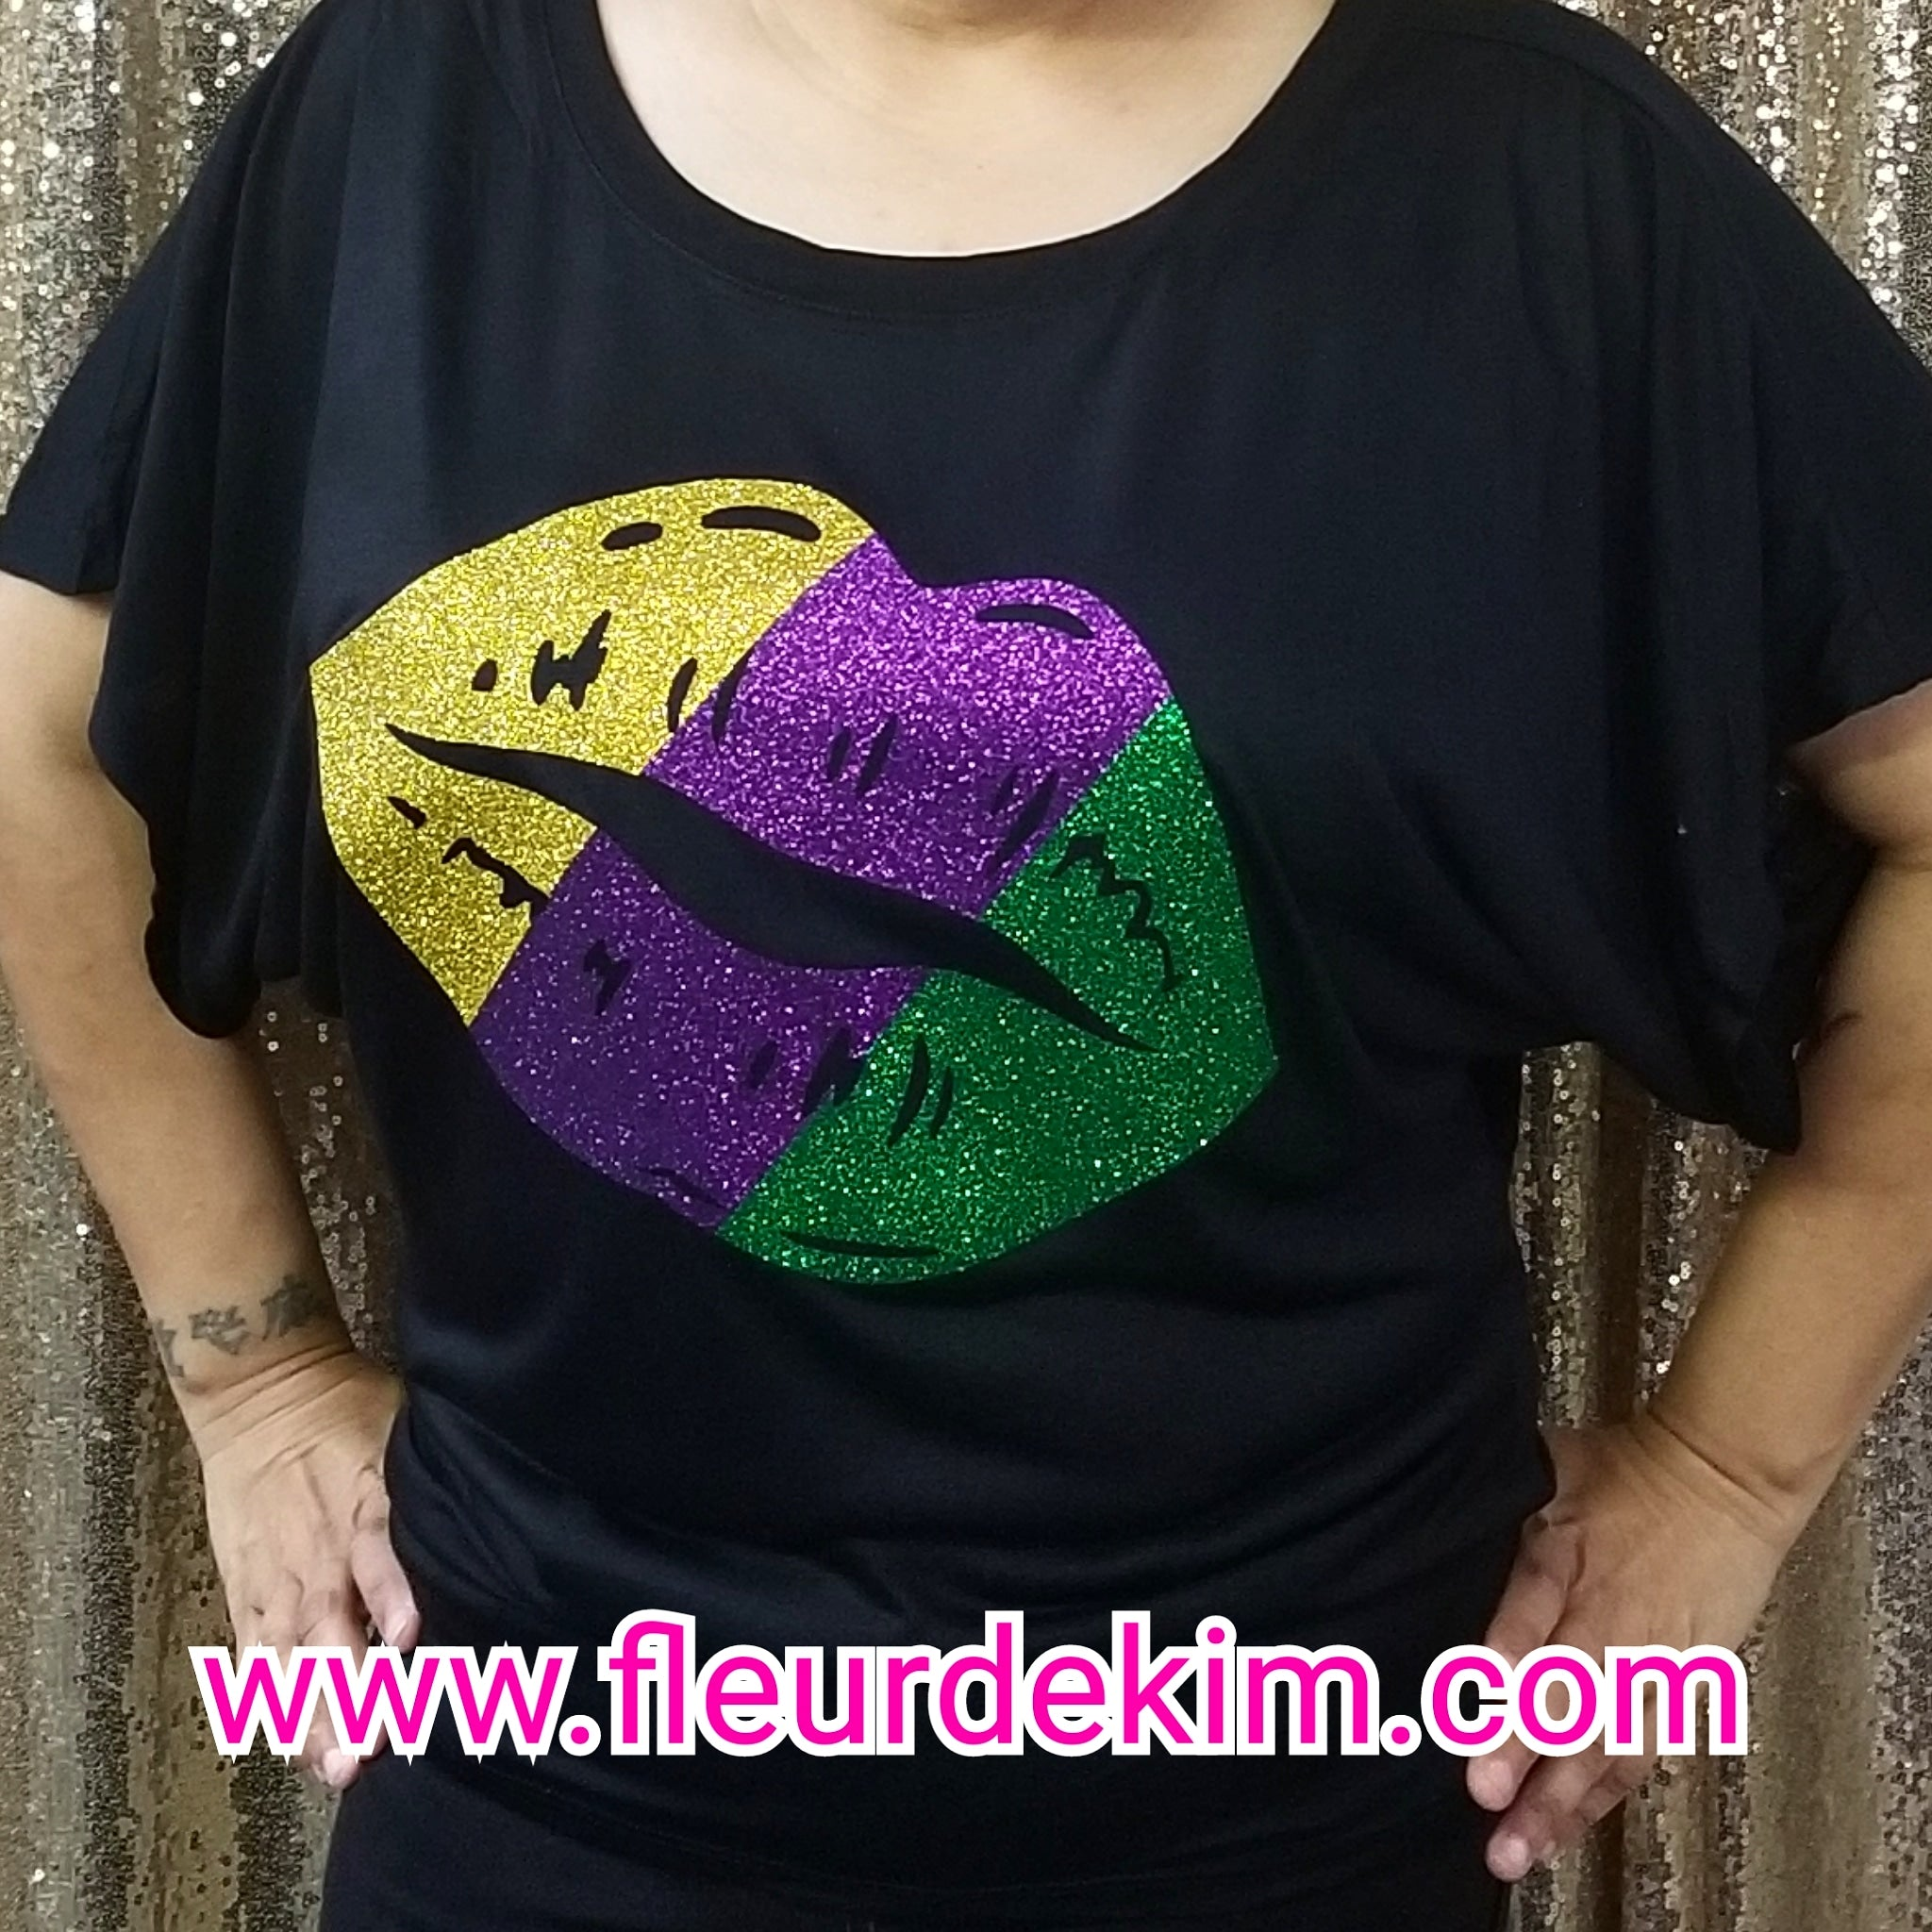 *Draped Mardi Gras lips shirt